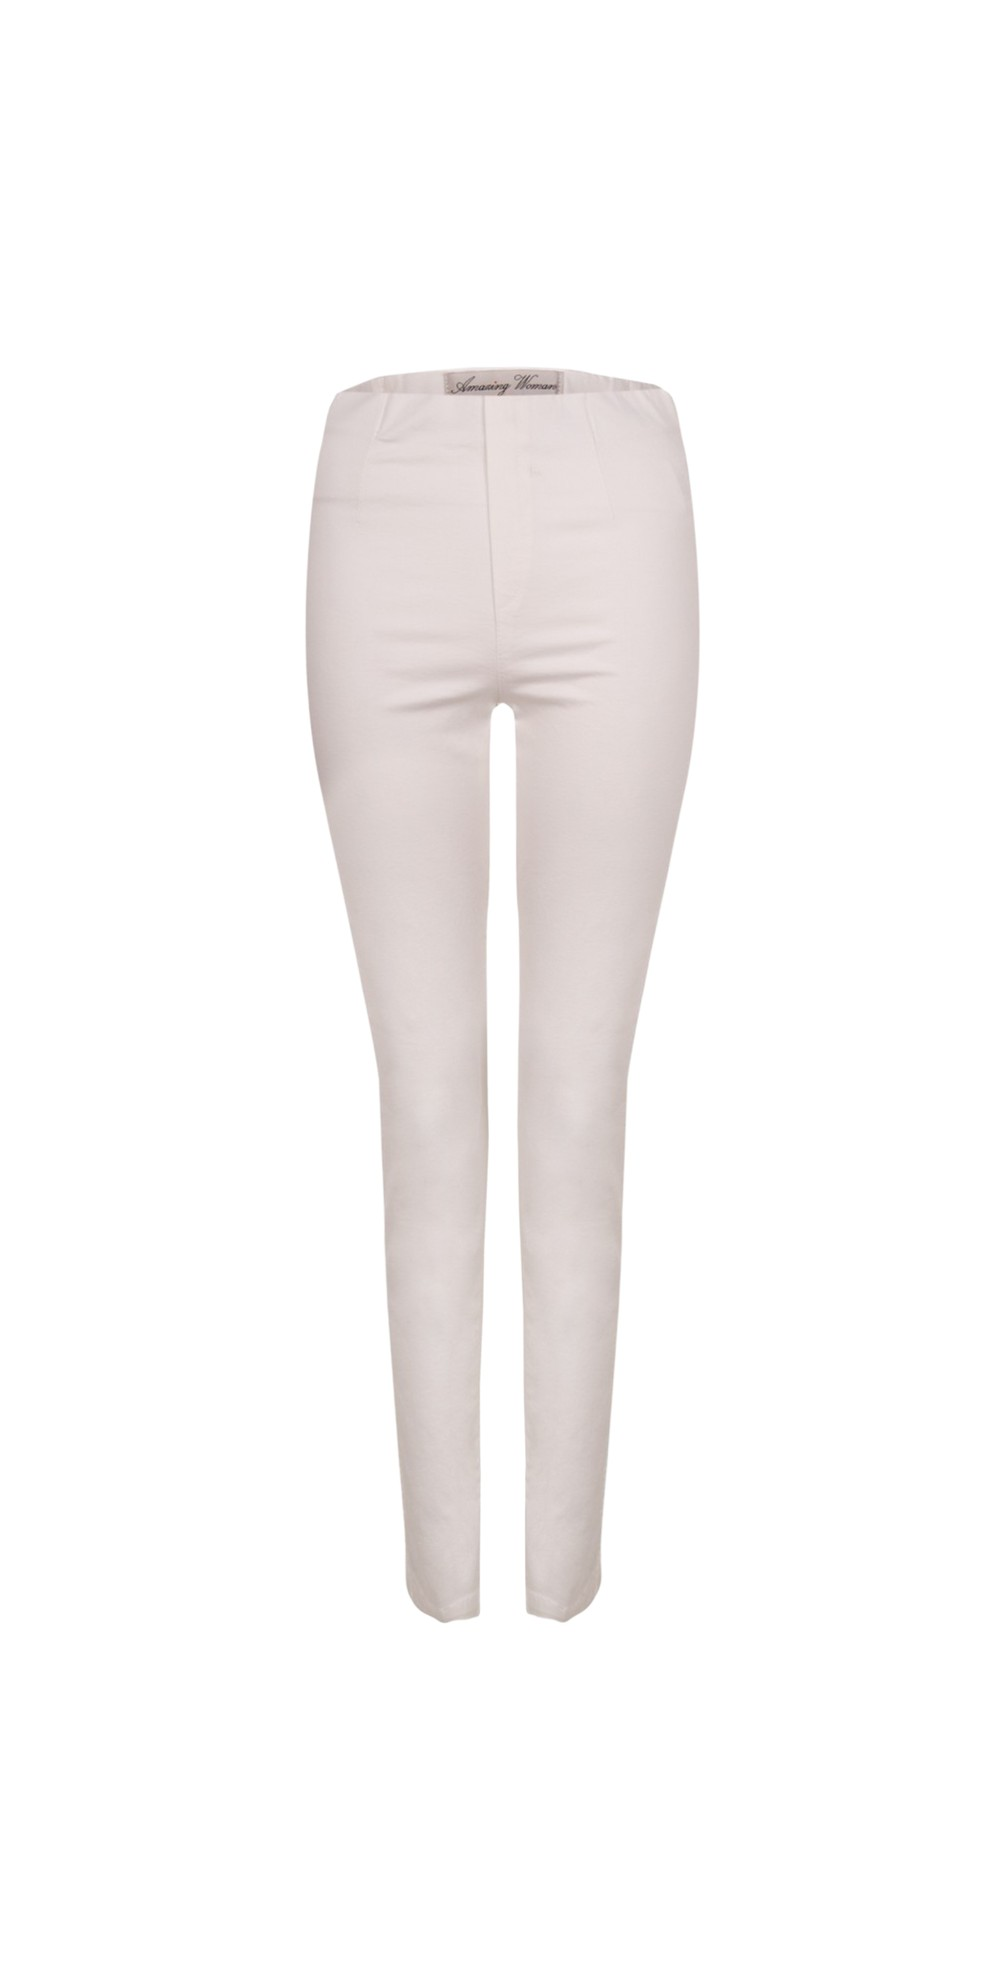 Moonlite 08 Superstretch Slimfit Pull On Trouser main image